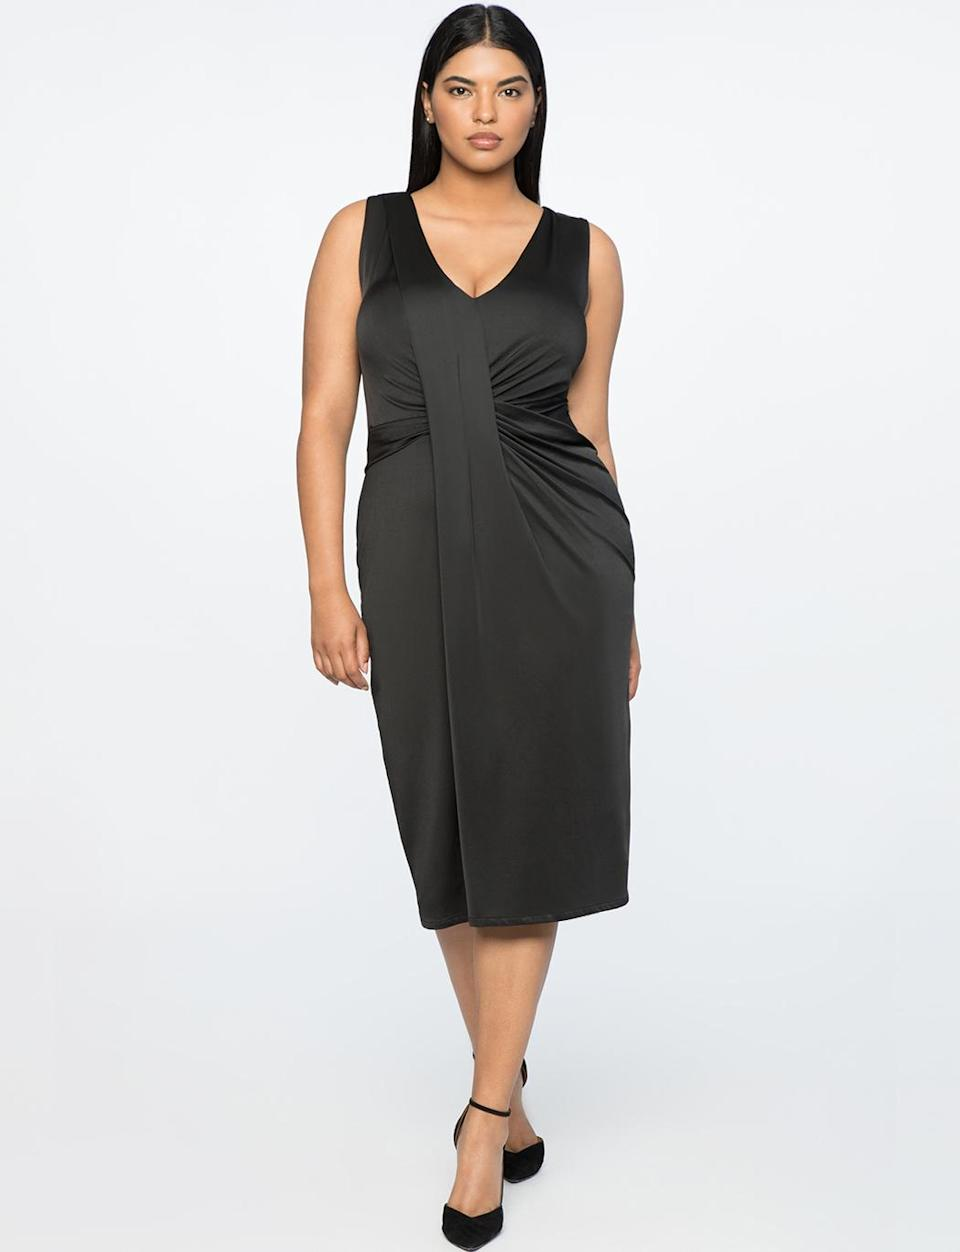 """<p>This draped dress is also available in black, which creates a more svelte aesthetic. You can wear it at a holiday cocktail party or on a date night. Just add a dash of red lipstick to brighten up your look. <br>Drape-front V-neck dress in black, $100, <a rel=""""nofollow noopener"""" href=""""https://fave.co/2zkGB4F"""" target=""""_blank"""" data-ylk=""""slk:eloquii.com"""" class=""""link rapid-noclick-resp"""">eloquii.com</a> </p>"""